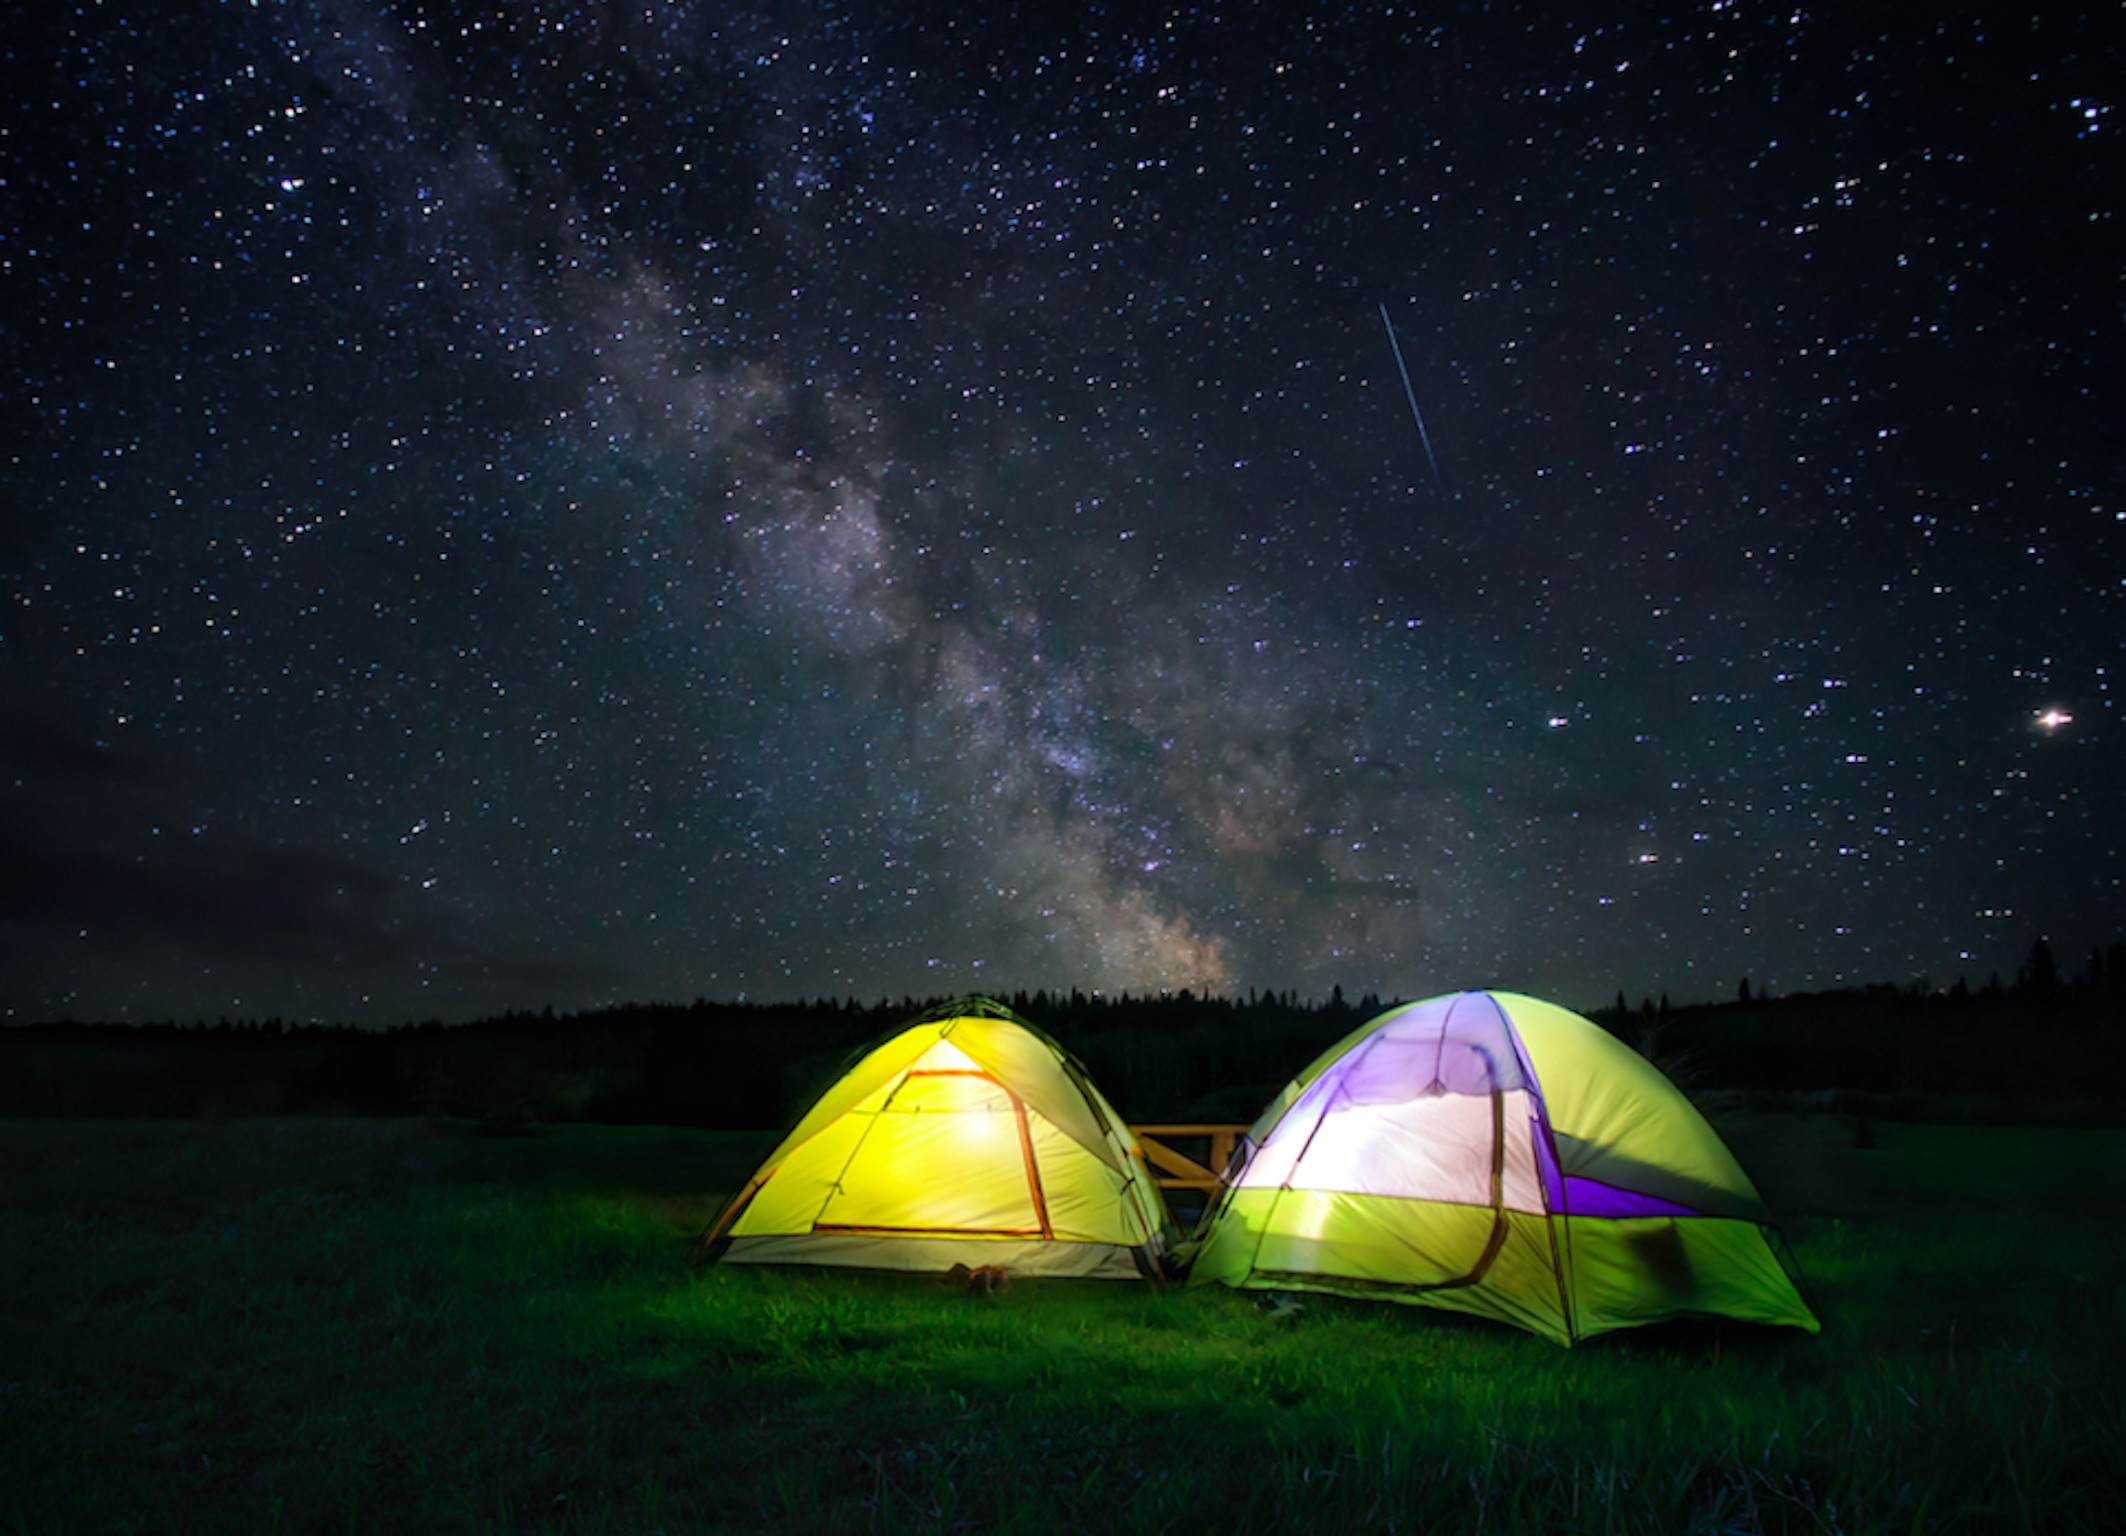 Camping: 5 ways to make it an eco-friendly camping trip